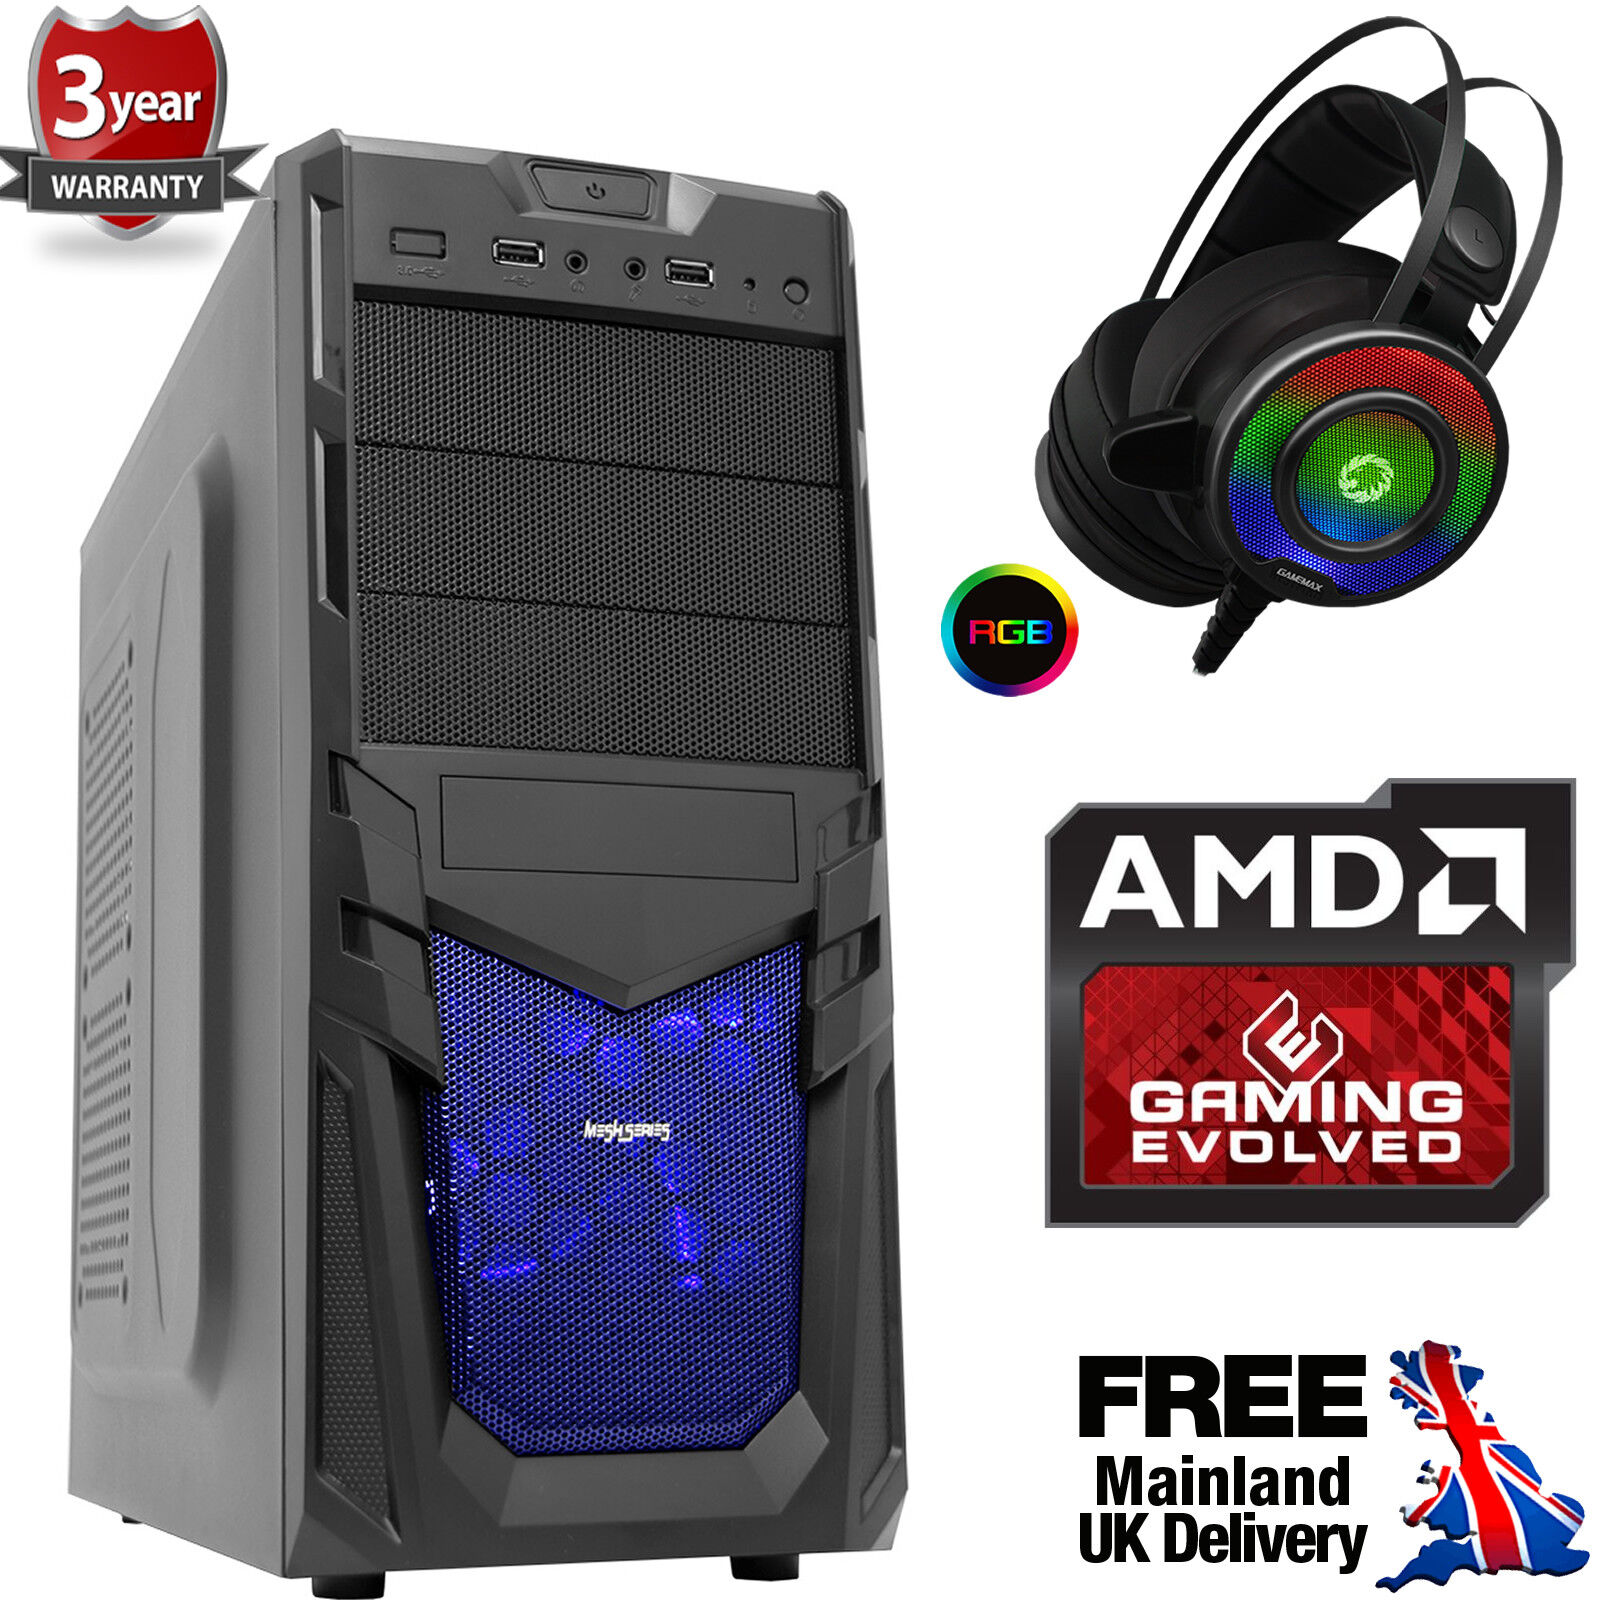 Computer Games - Mega Fast AMD Quad Core 4.2 Desktop Gaming PC Computer 8GB 1TB RGB Headset Ven